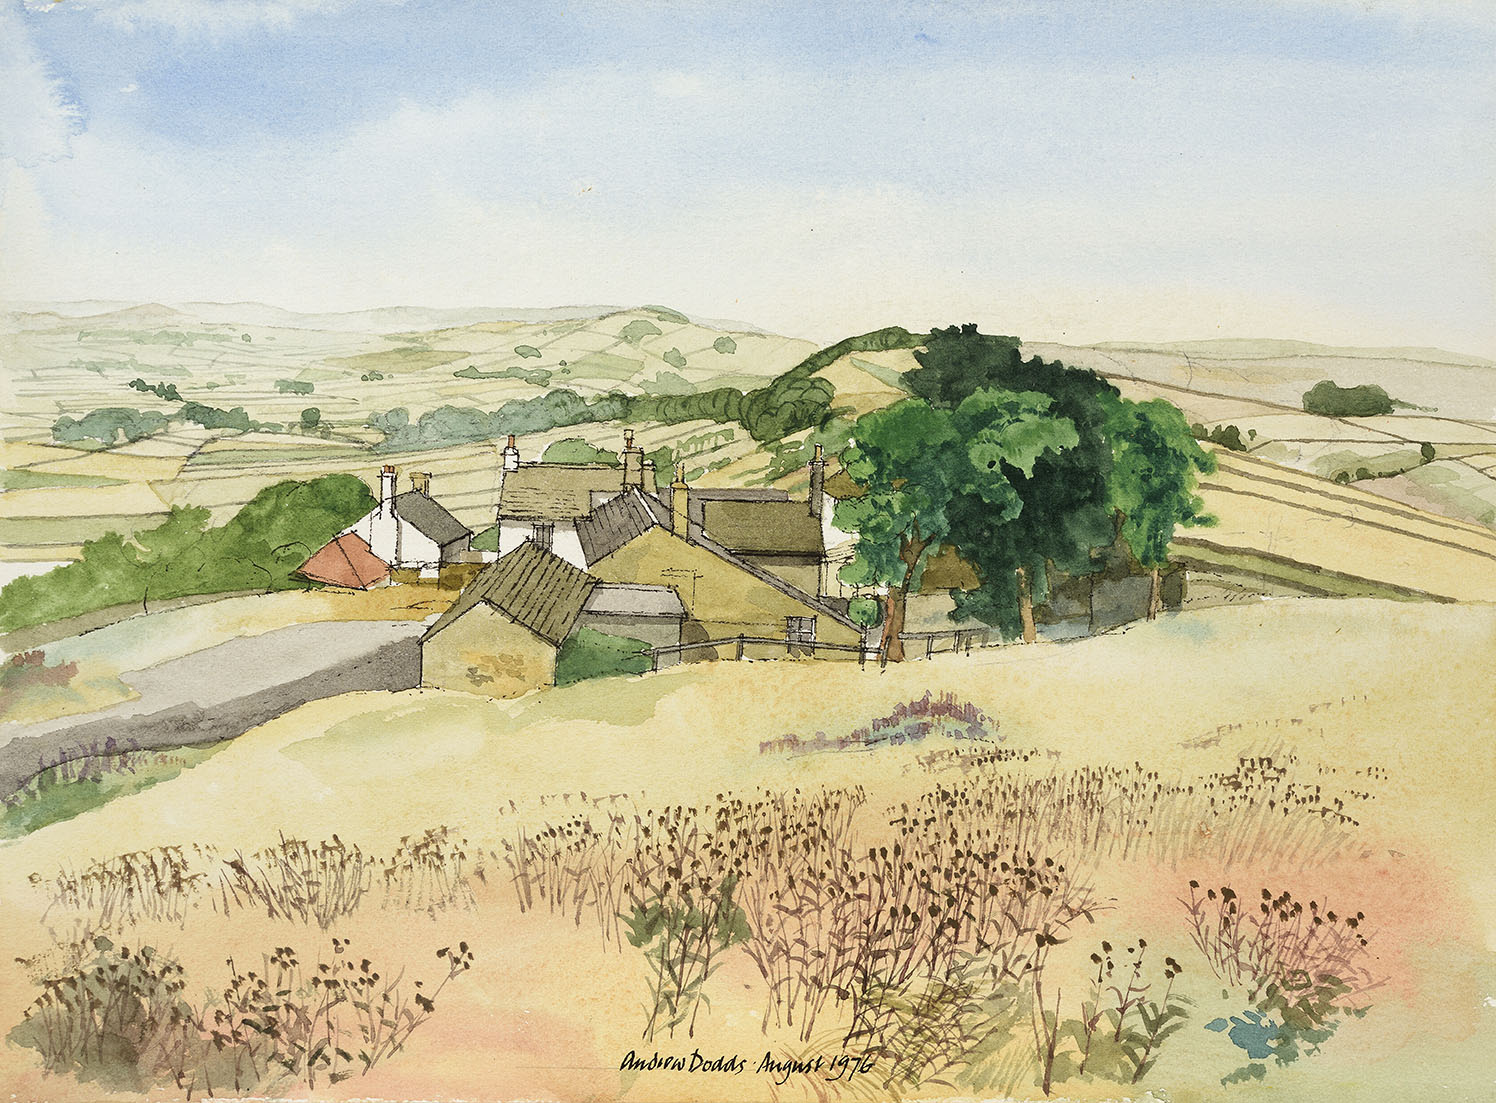 Andrew Dodds (1927-2004)    Peak District,  1976, Pen and watercolour on paper, 10 ¼ x 13 ¾ in, Signed and dated  [CAS 33] Acquired in 1977